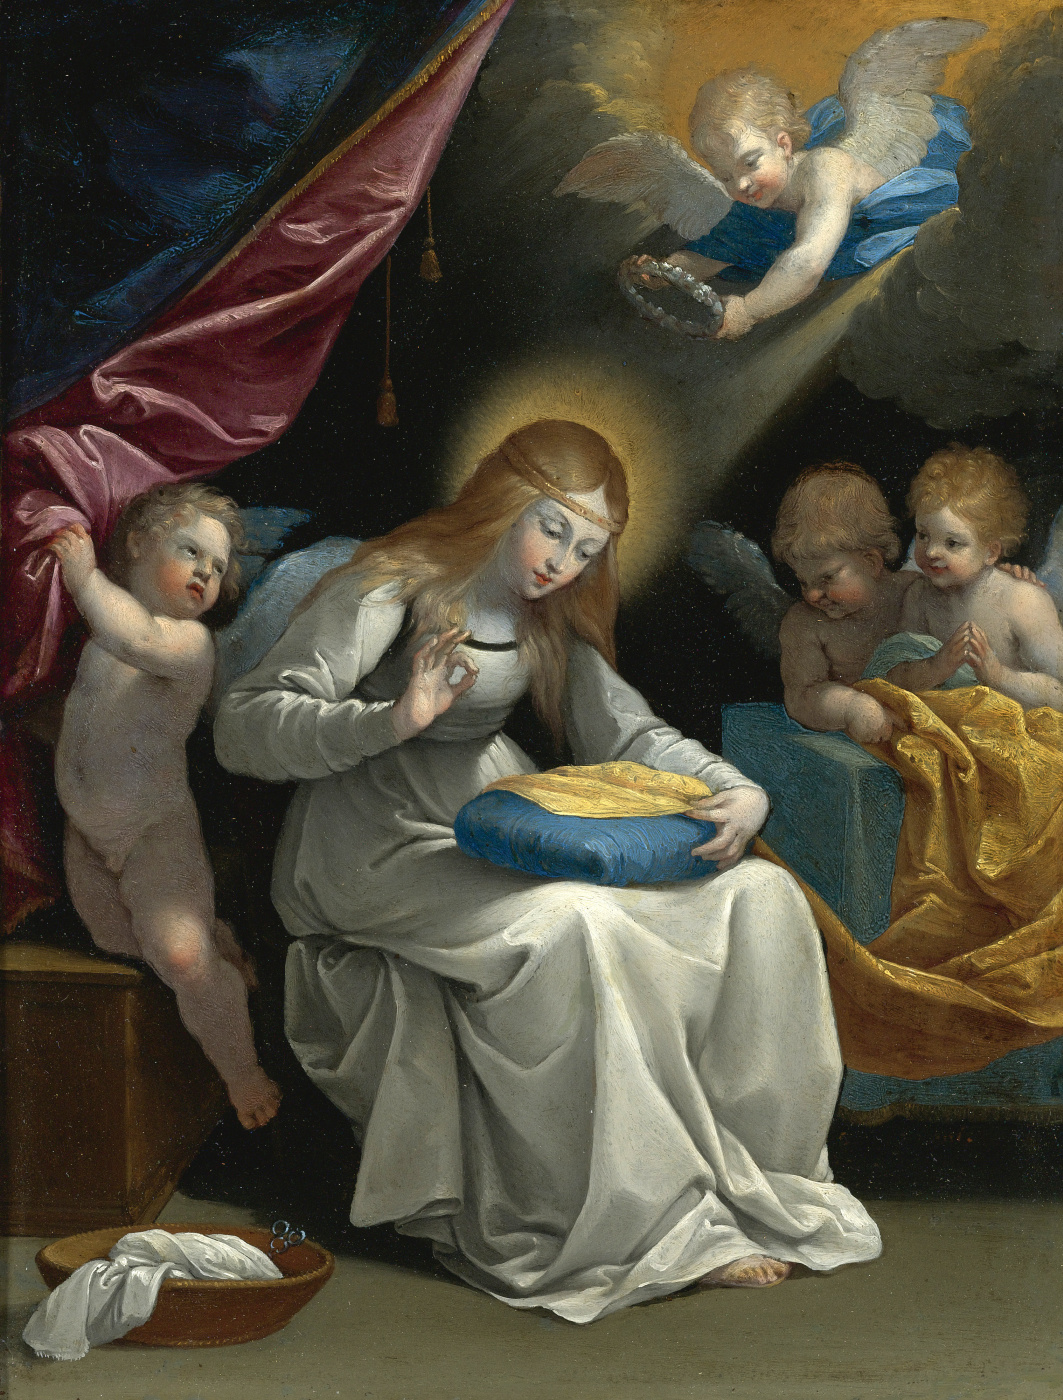 Guido Reni. Virgin Mary embroiders in the arms of angels.